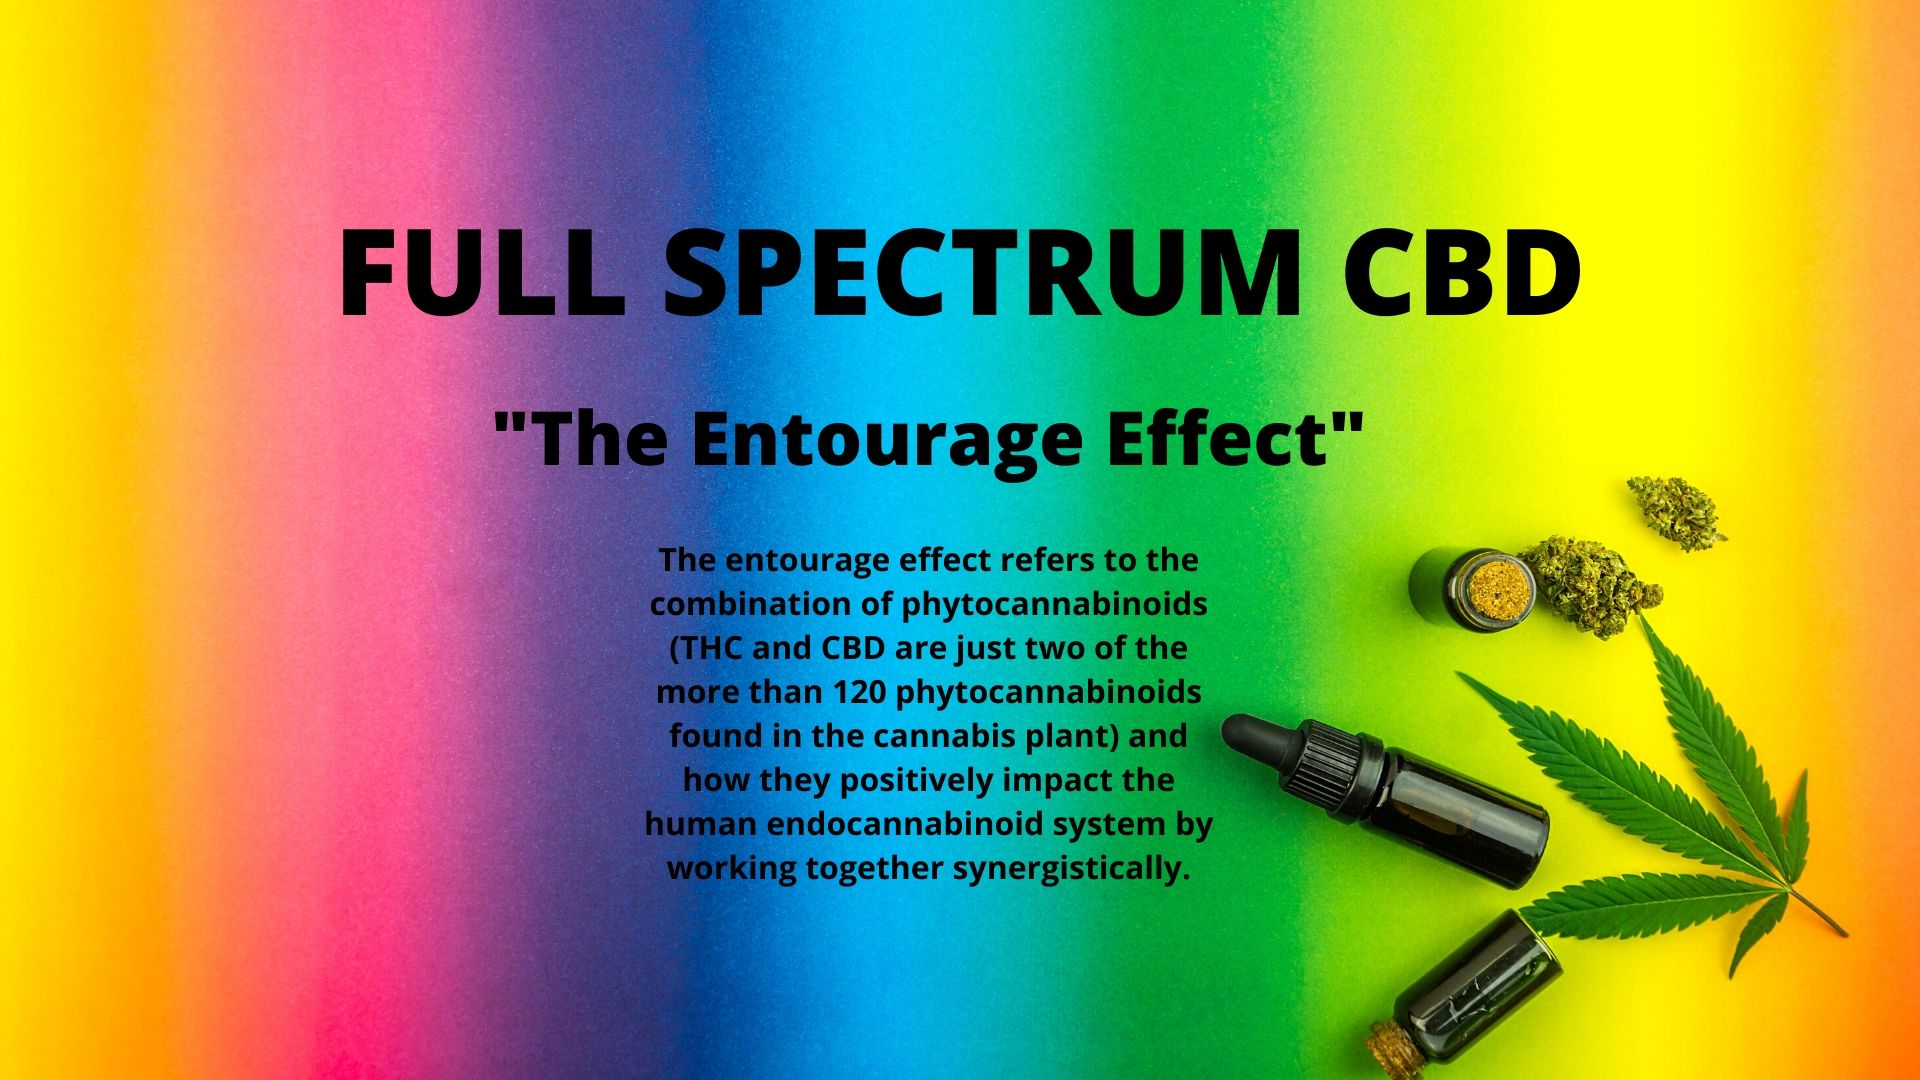 "Full Spectrum CBD providing ""The Entourage Effect"" The entourage effect refers to the combination of phytocannabinoids (THC and CBD are just two of the more that 120 phytocannabinoids found in the cannabis plant) and how they positively impact the human endocannabinoid system by working together synergergistically."